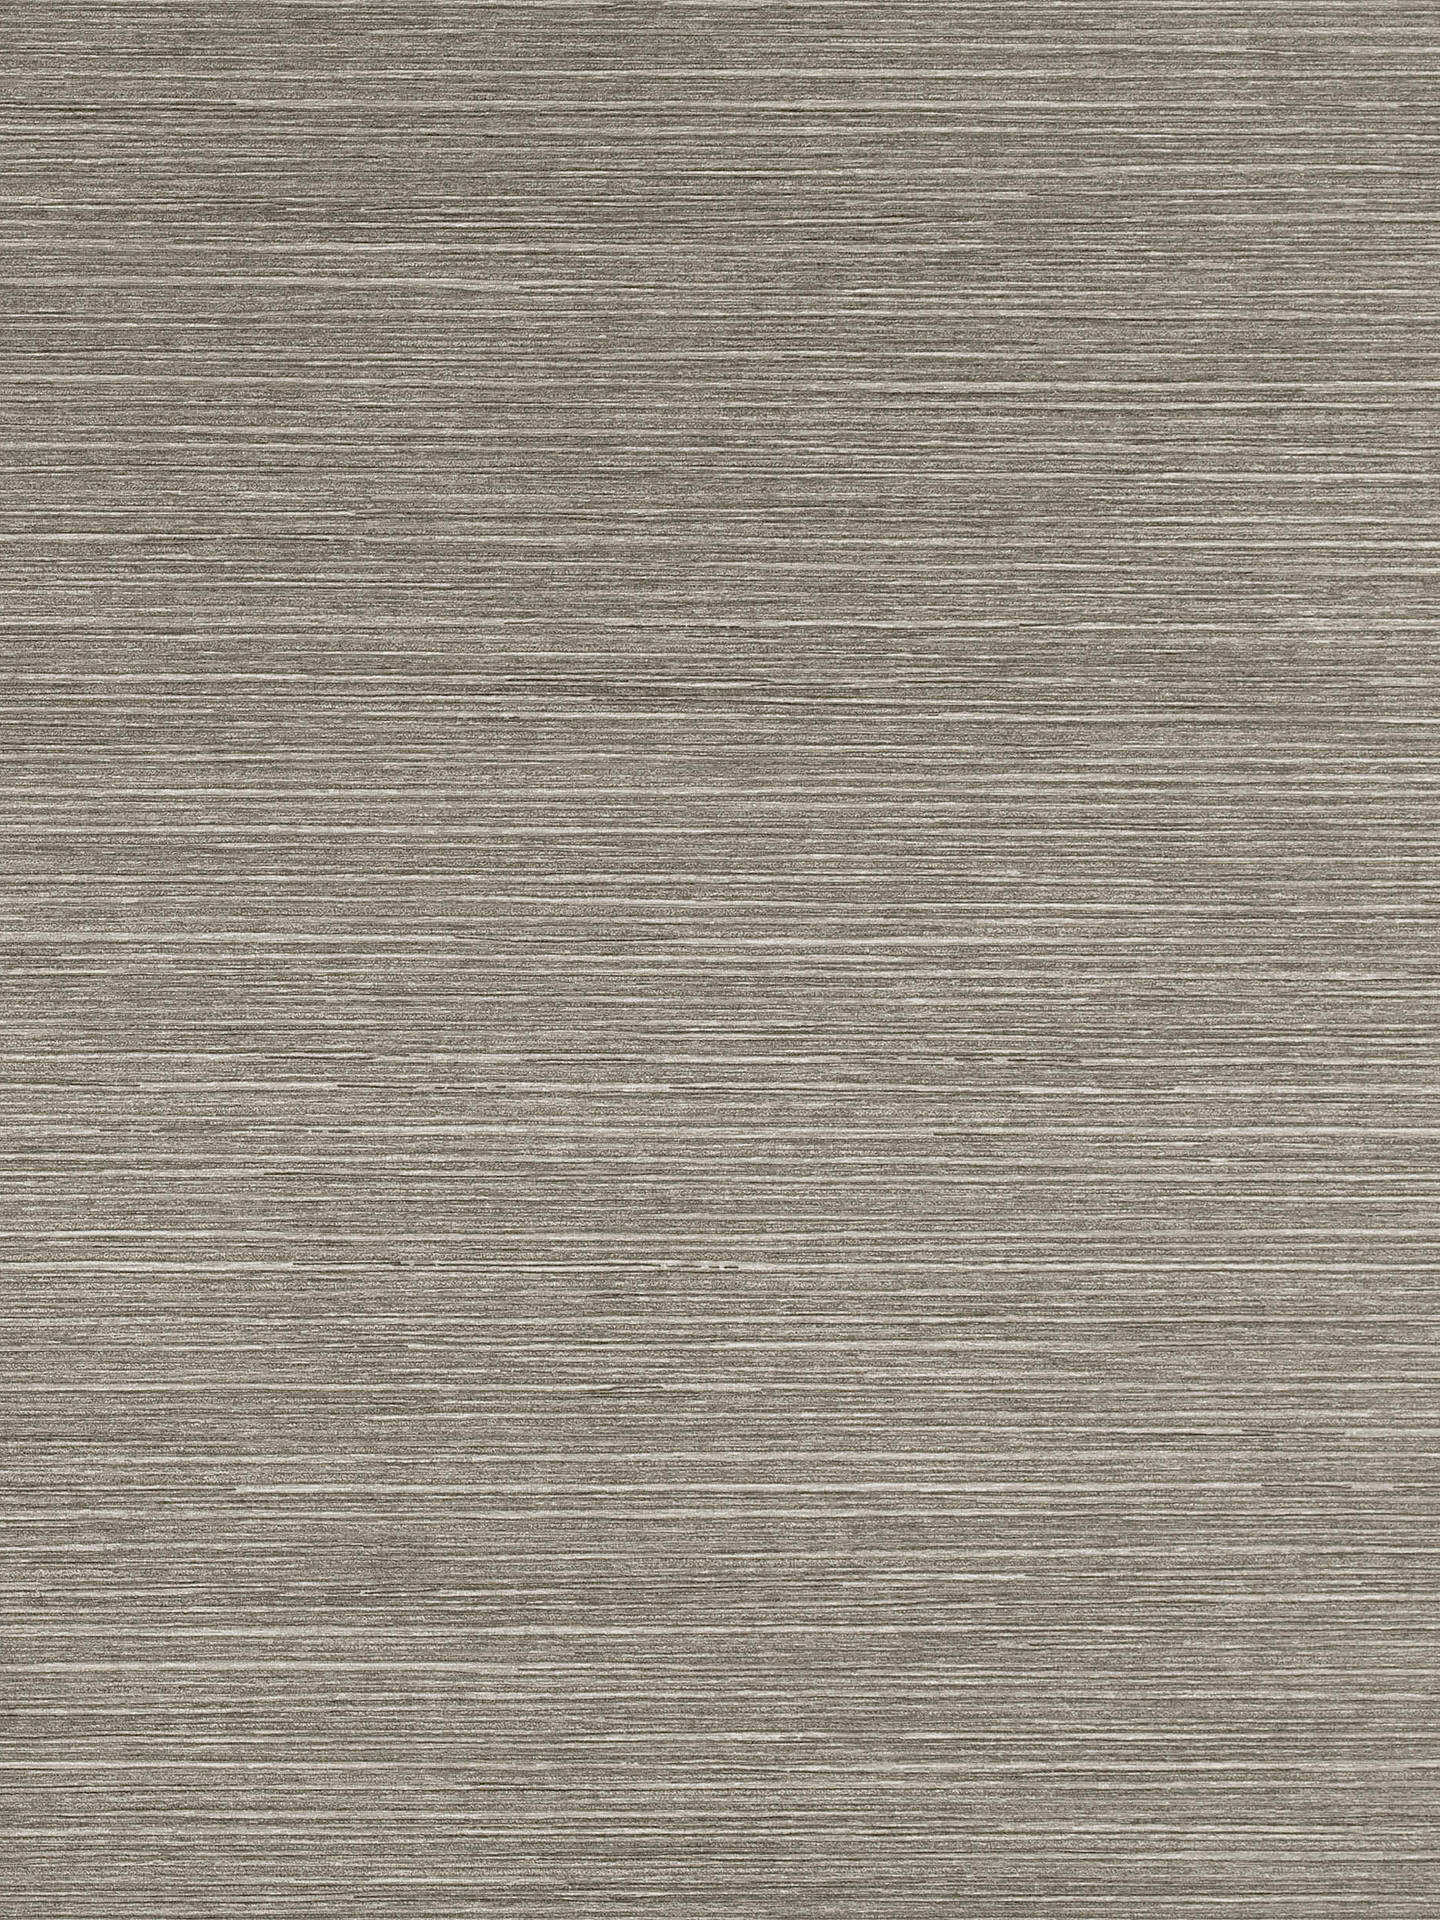 Buy Romo Pica Wallpaper, Indium W403/05 Online at johnlewis.com